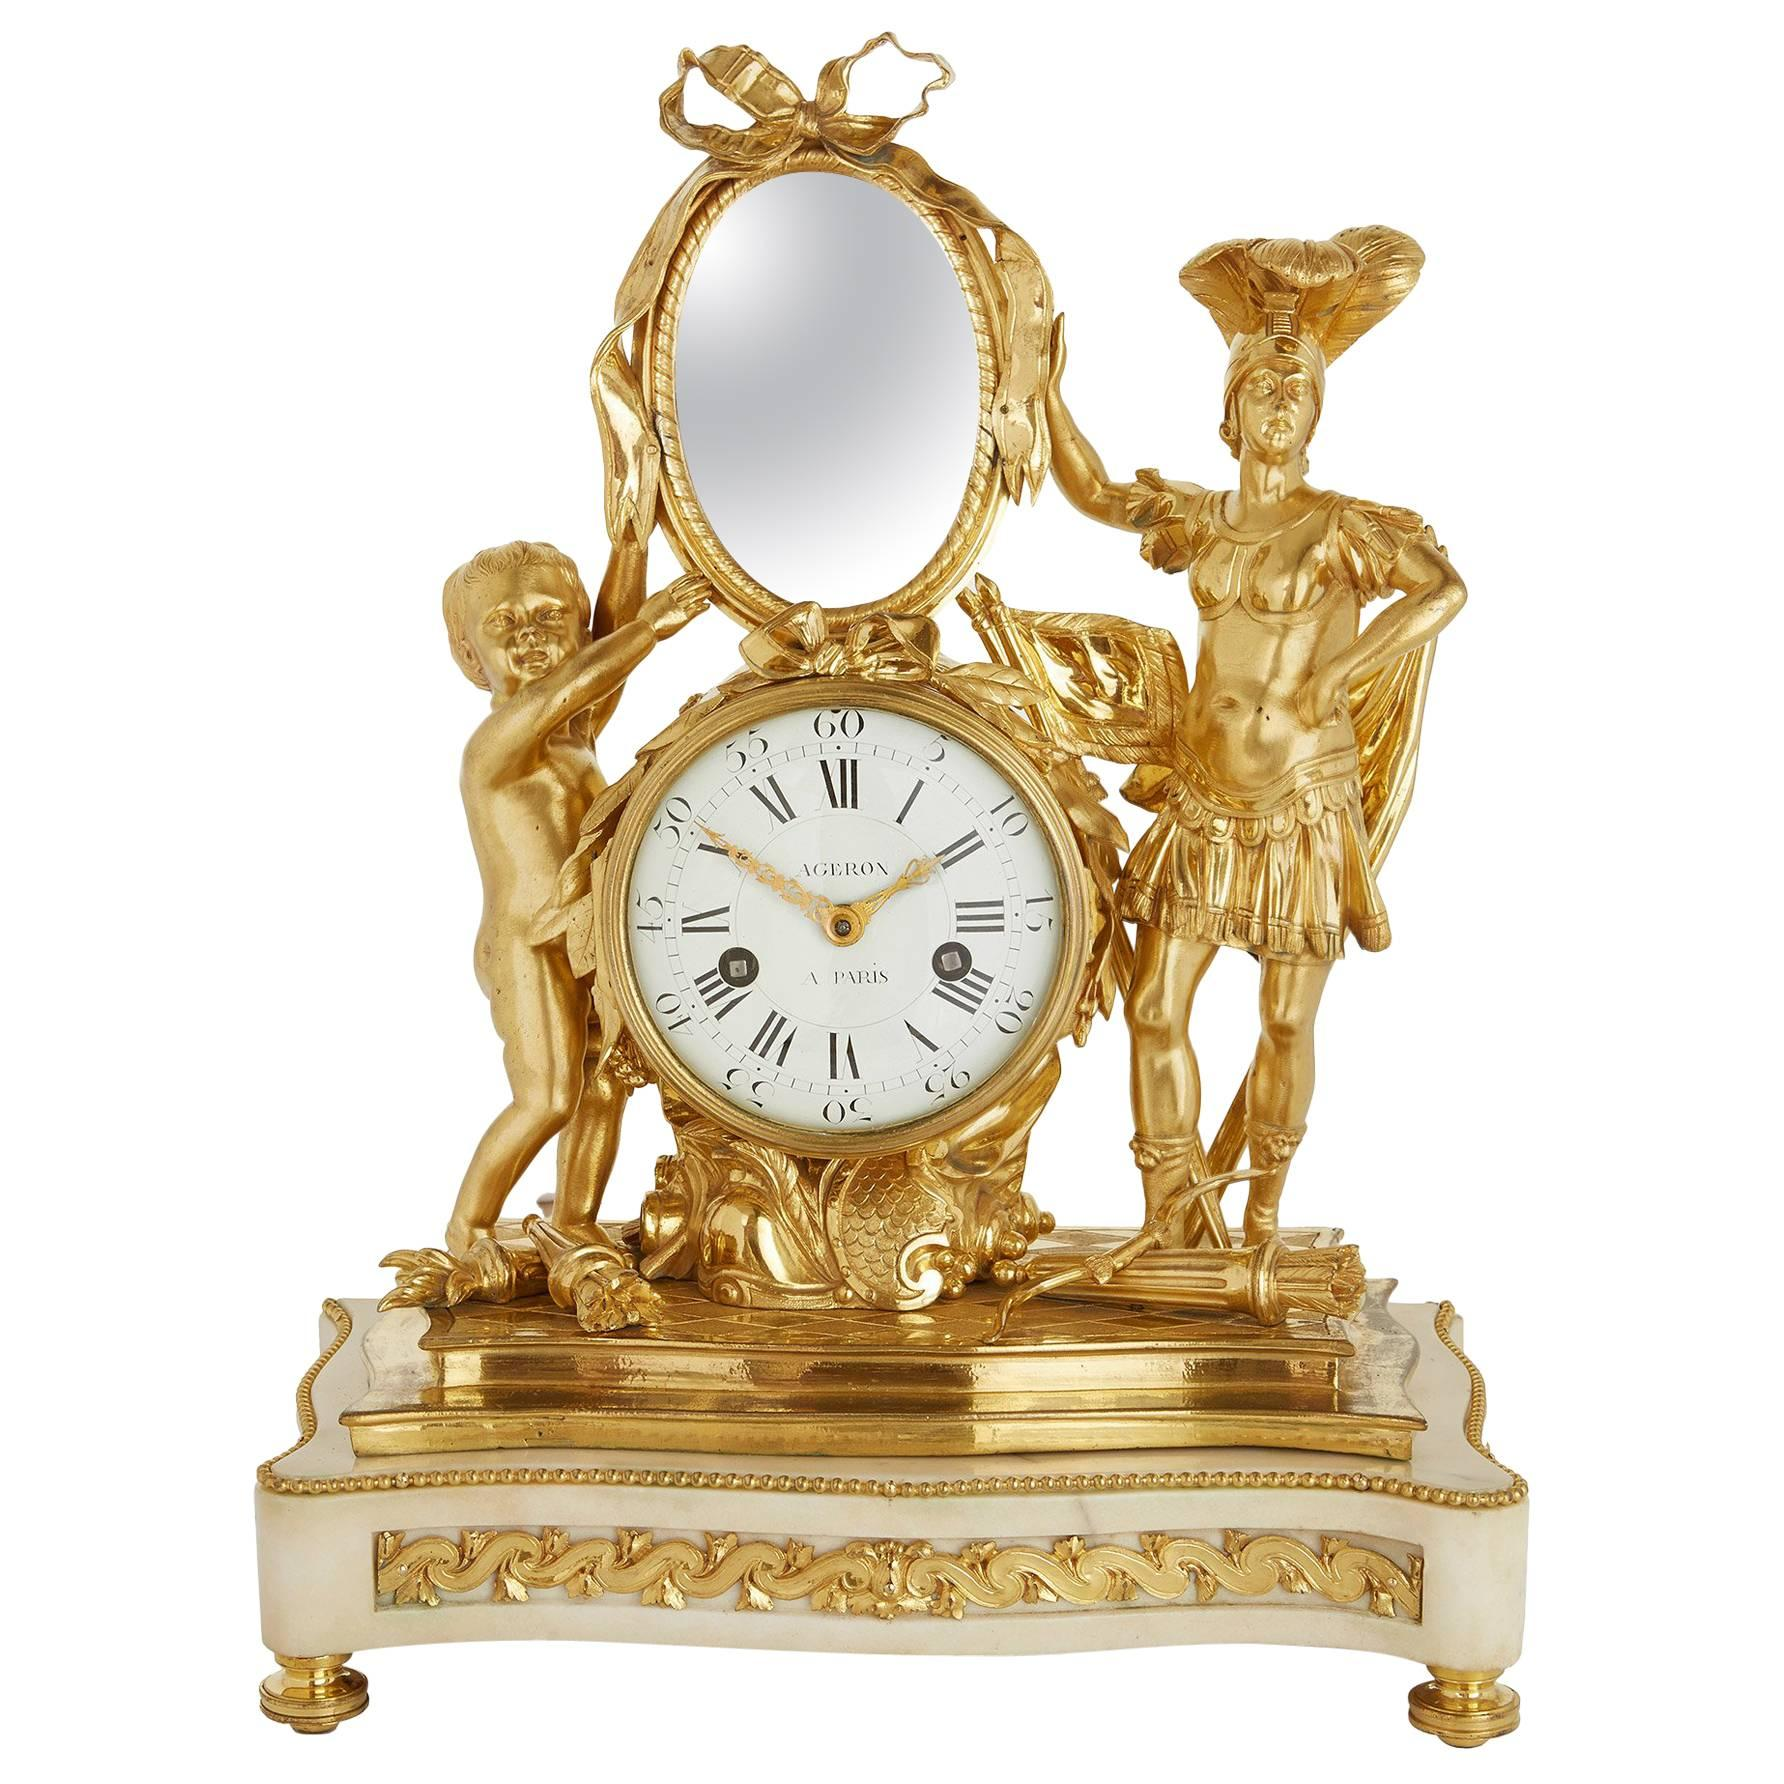 19th Century Neoclassical Style Ormolu and Marble Mantel Clock